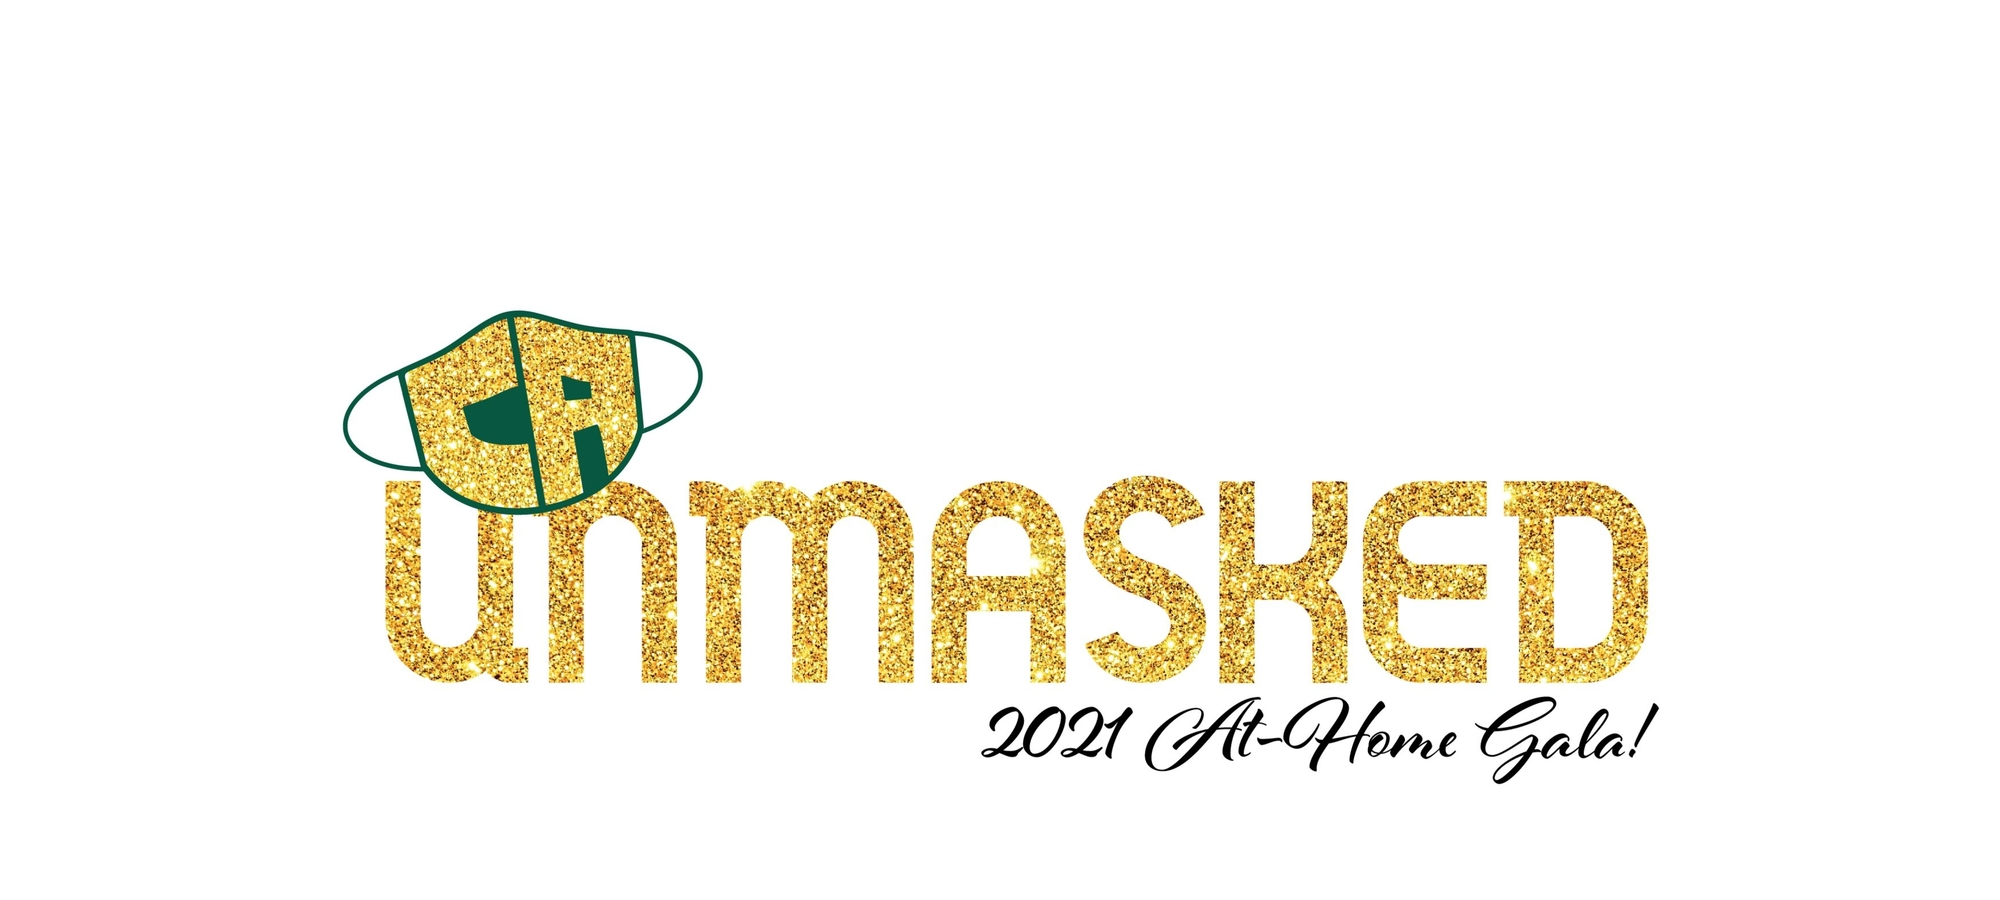 Glittery logo for CA Unmasked Gala